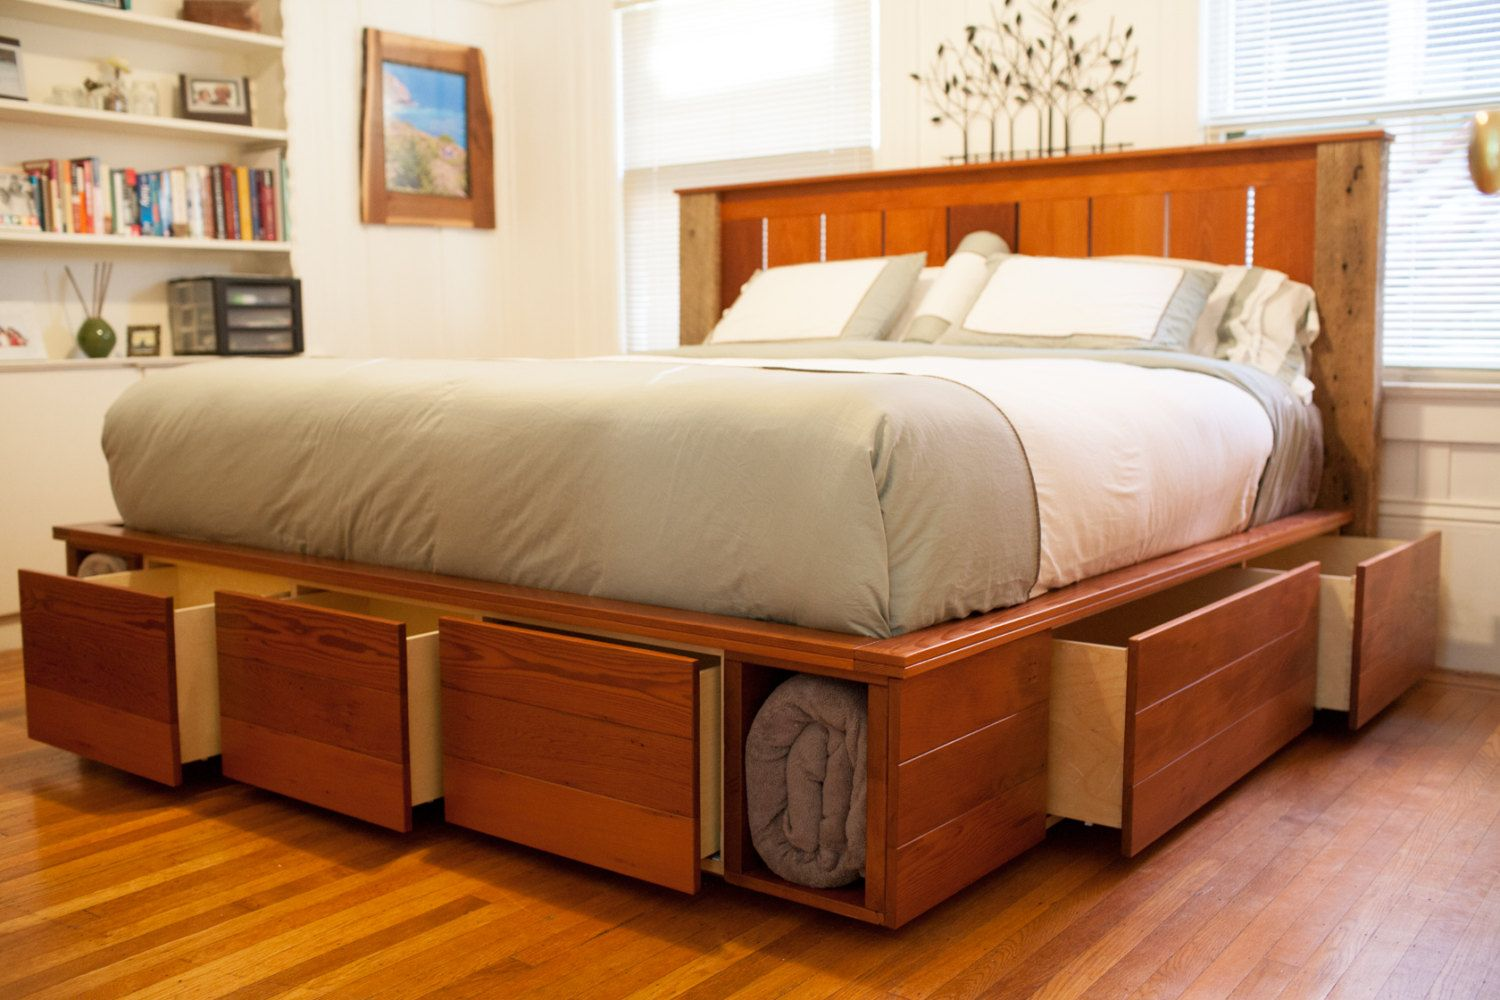 Platform bed woodworking plans you can build this king for King size bed designs